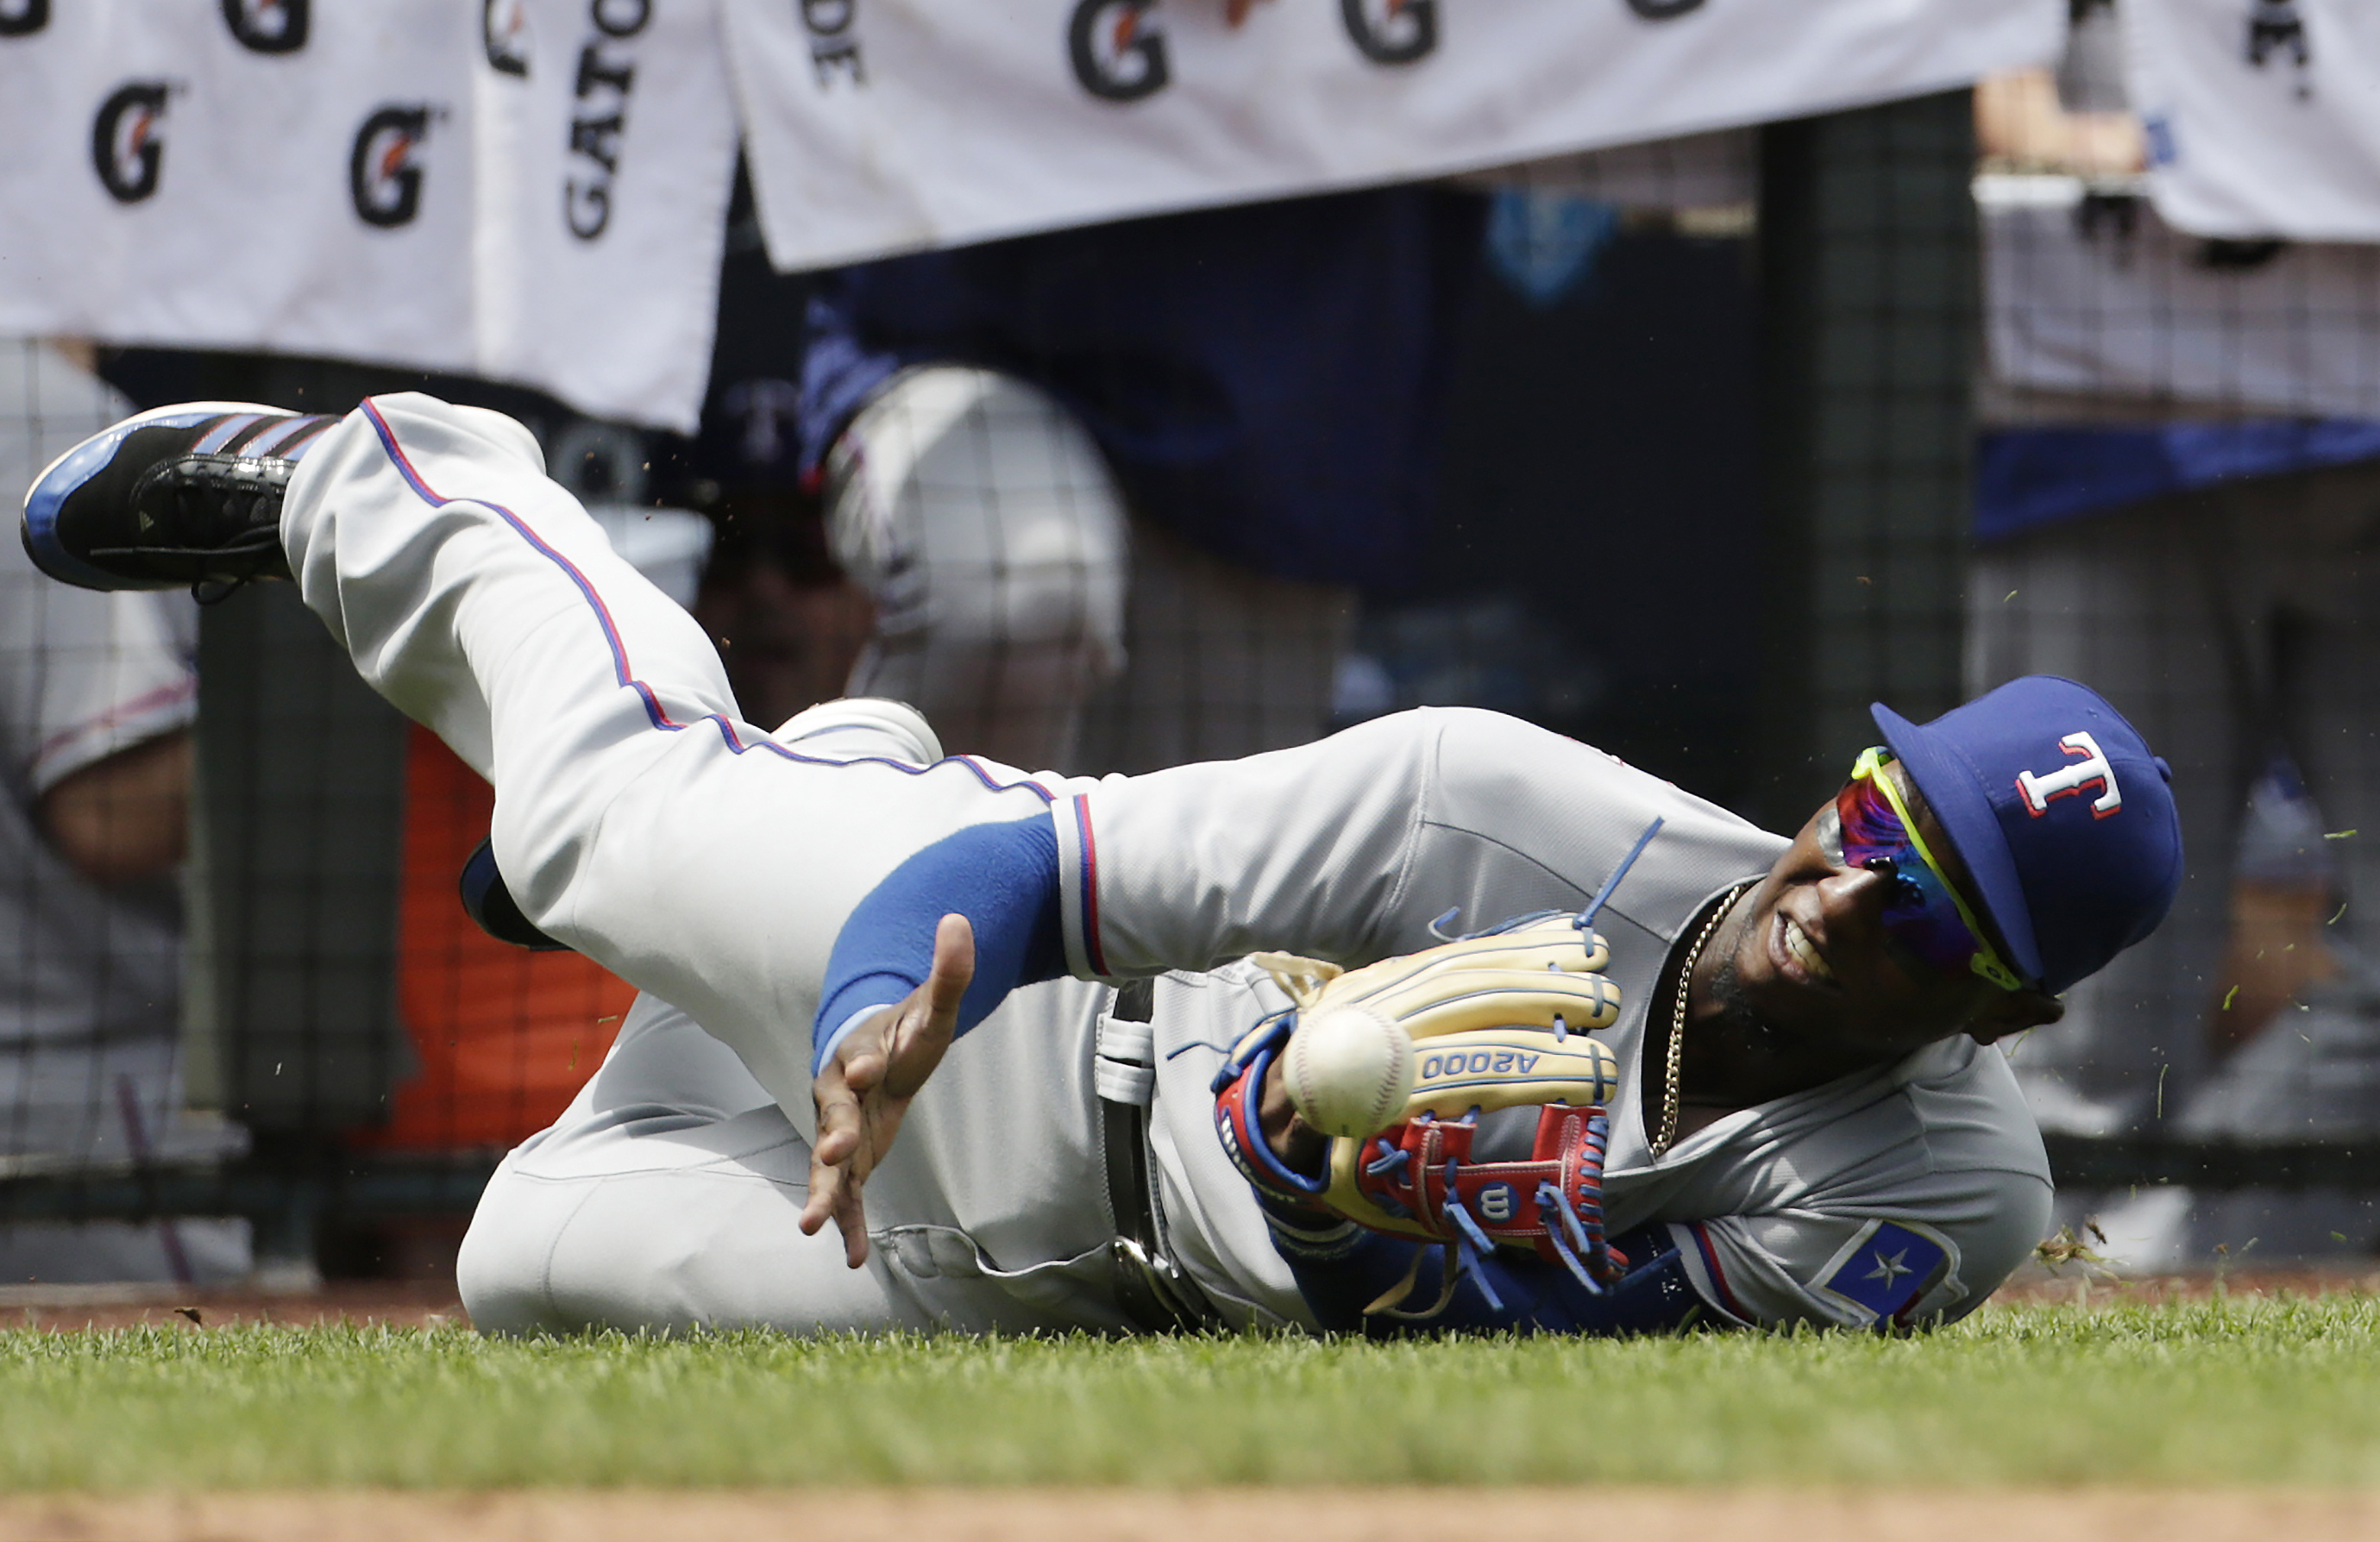 Texas Rangers third baseman Jurickson Profar is unable to hold on to a popup hit by Kansas City Royals' Jarrod Dyson during the third inning of a baseball game at Kauffman Stadium in Kansas City, Mo., Sunday, June 24, 2016. (AP Photo/Colin E. Braley)